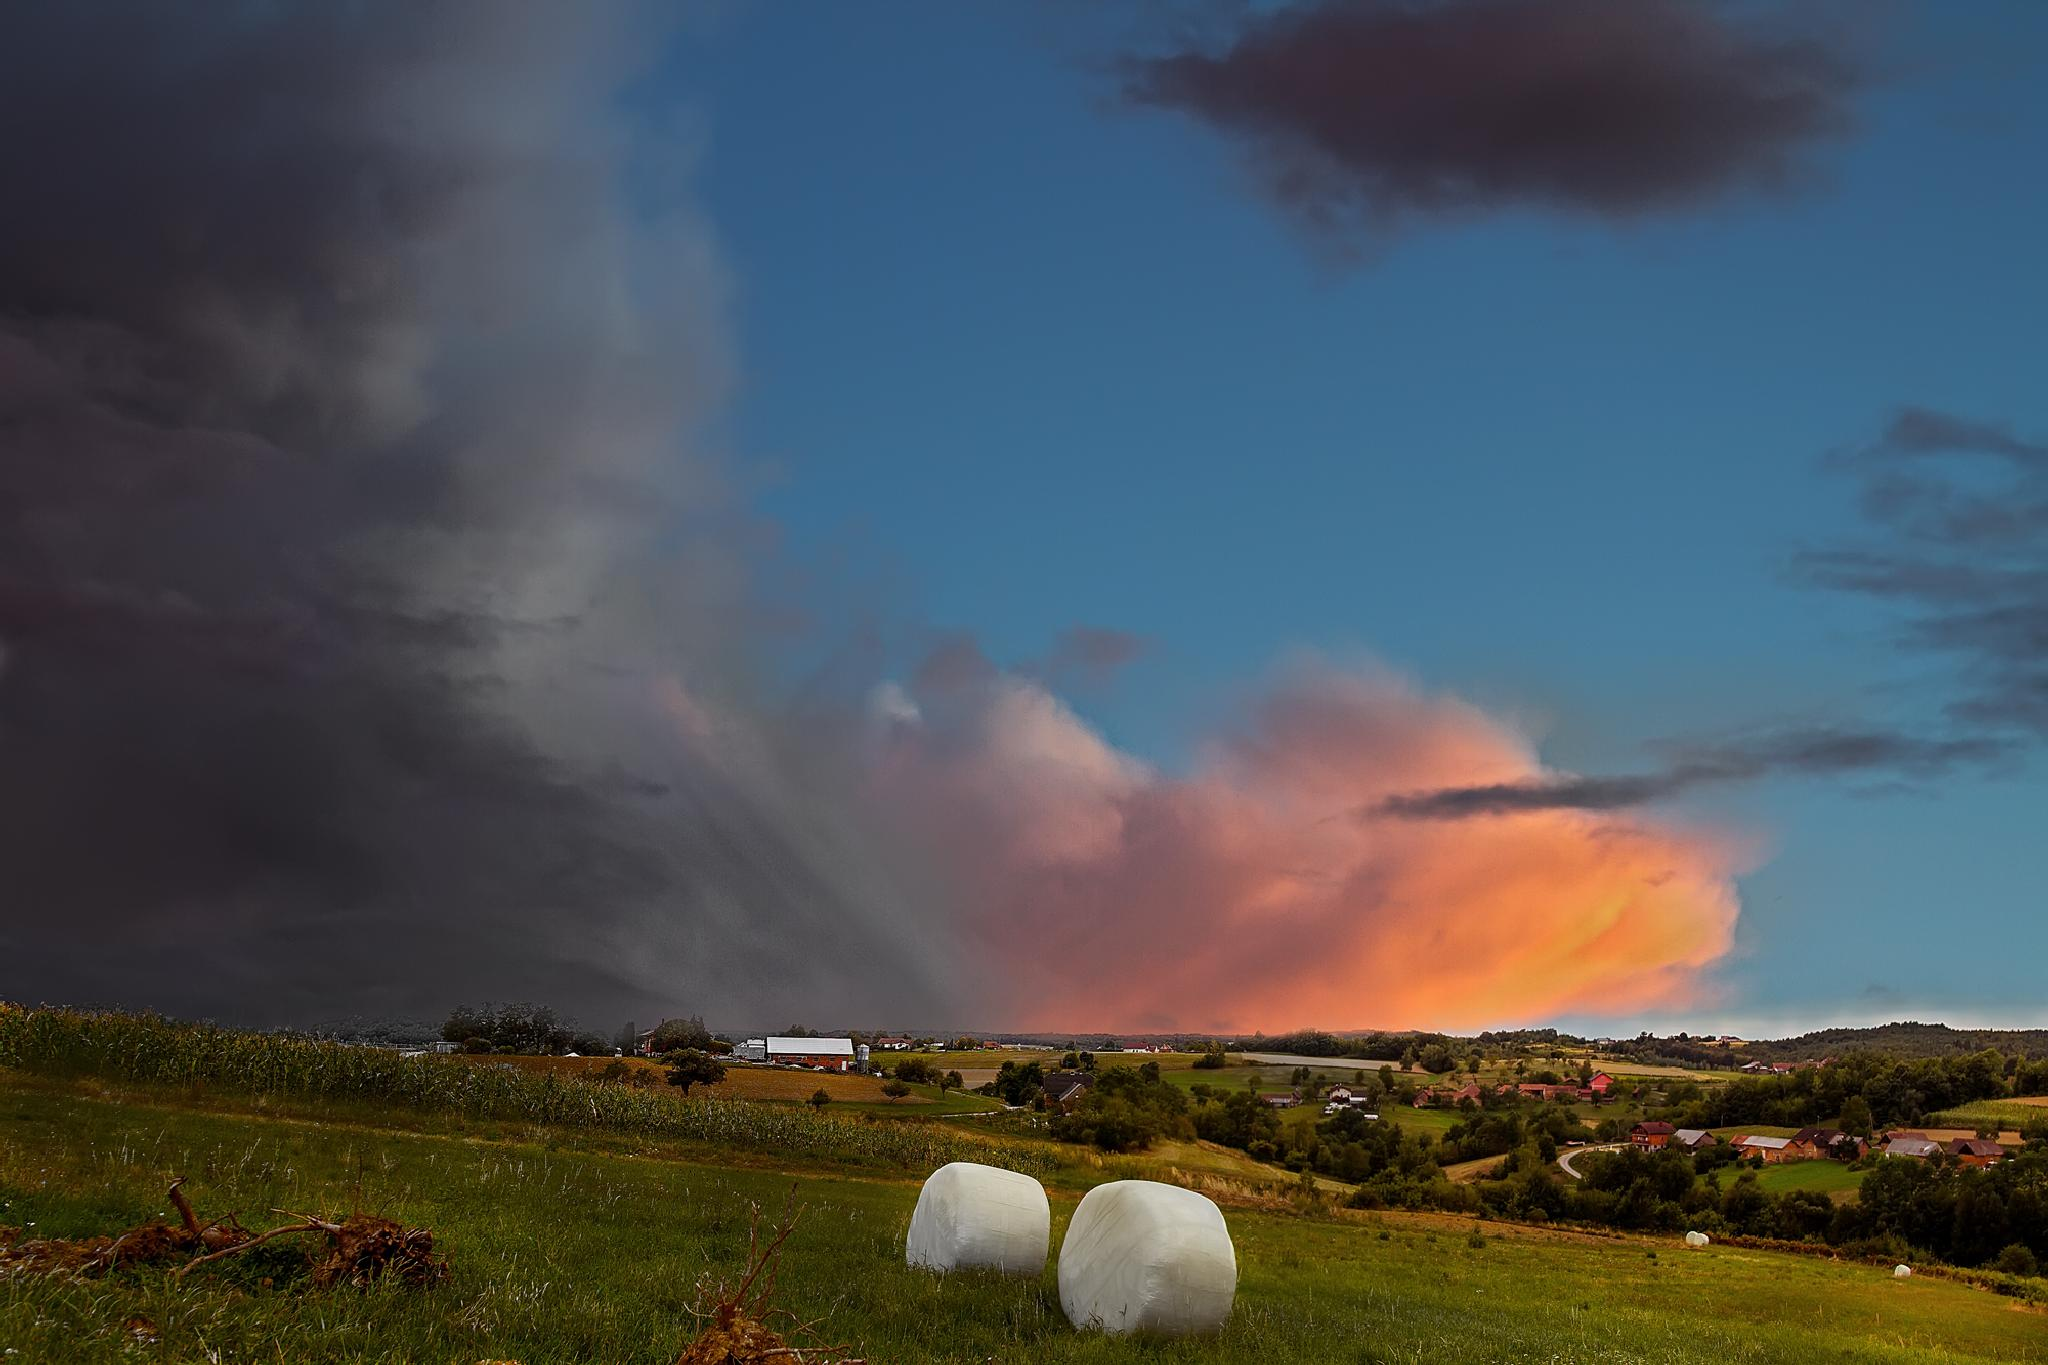 Incoming storm over a small village by zdravko.horvat